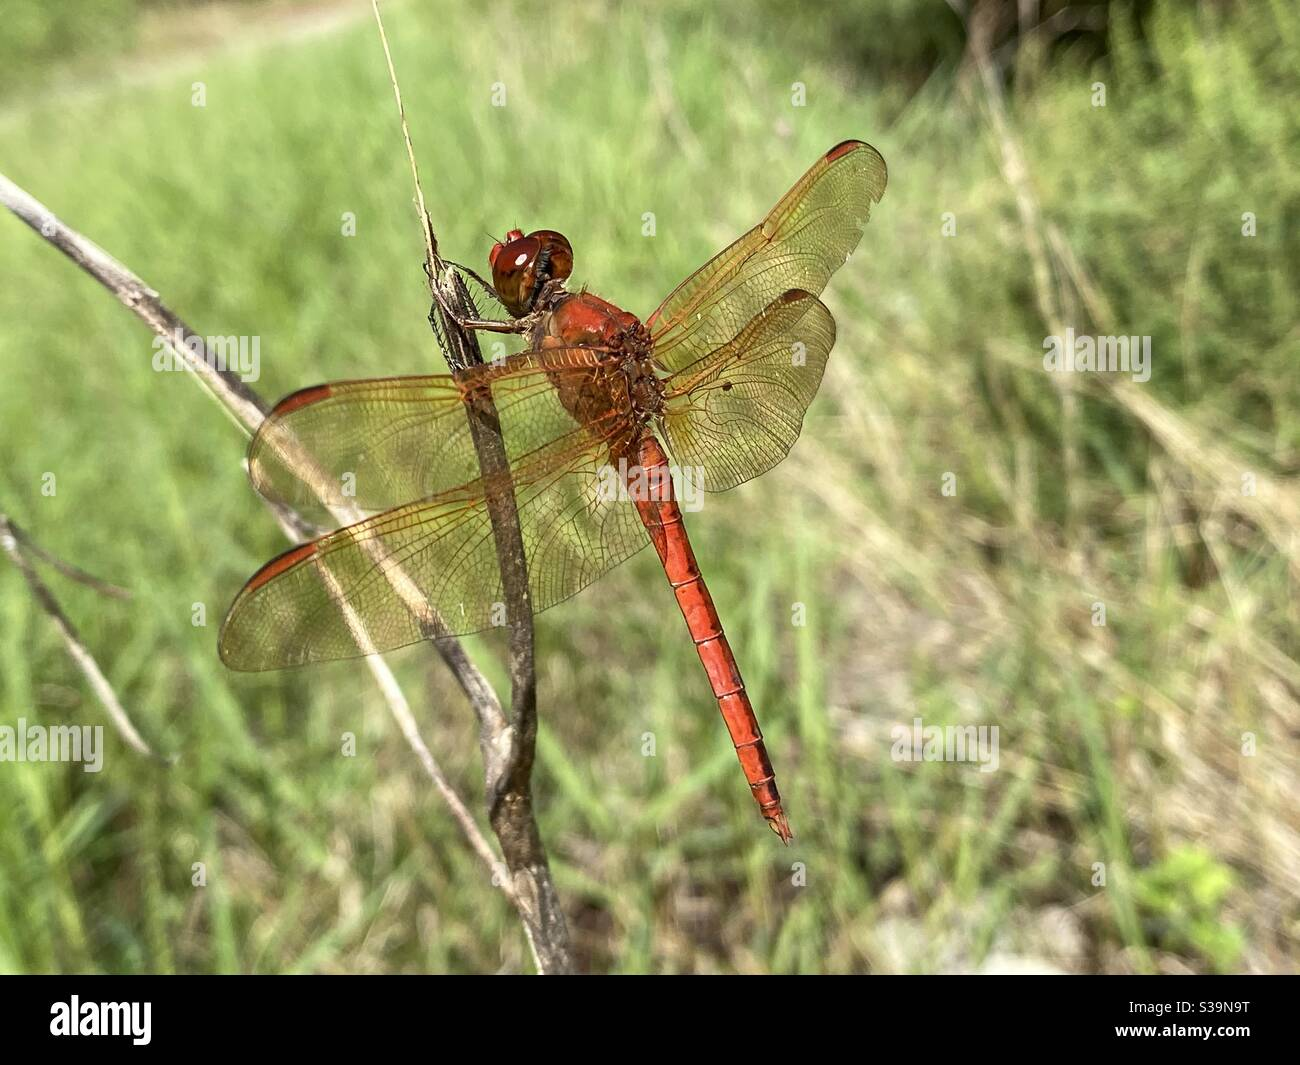 Red darter dragonfly perched on a stick in the forest Stock Photo